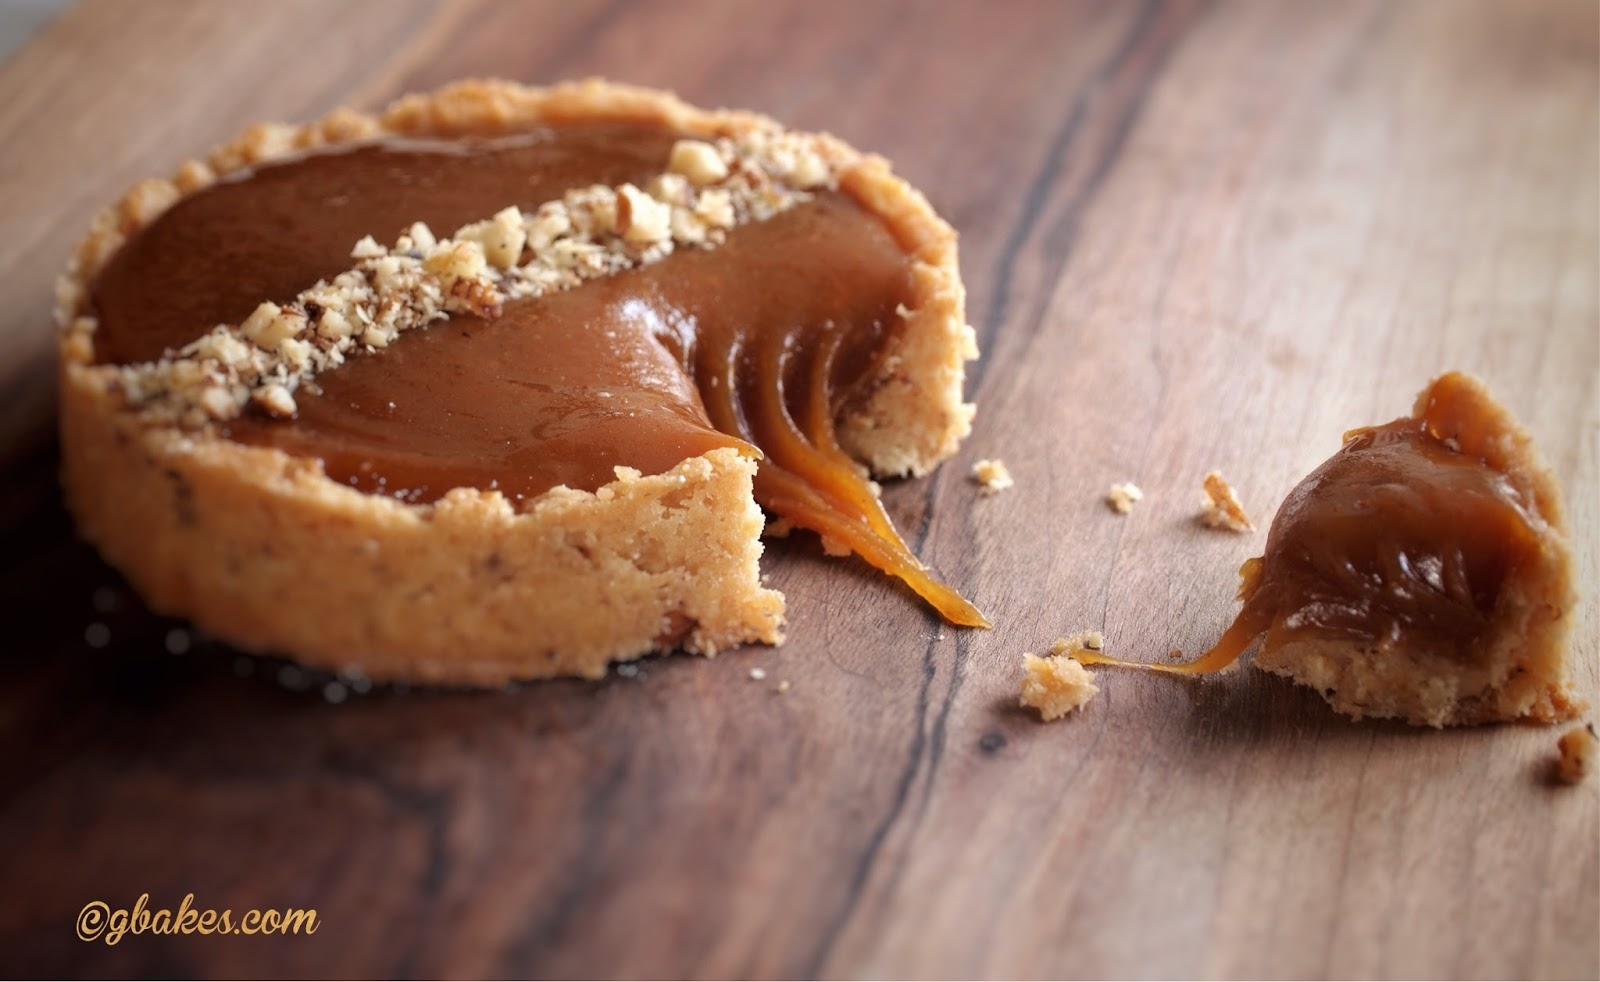 recipe: caramel tart recipe condensed milk [8]